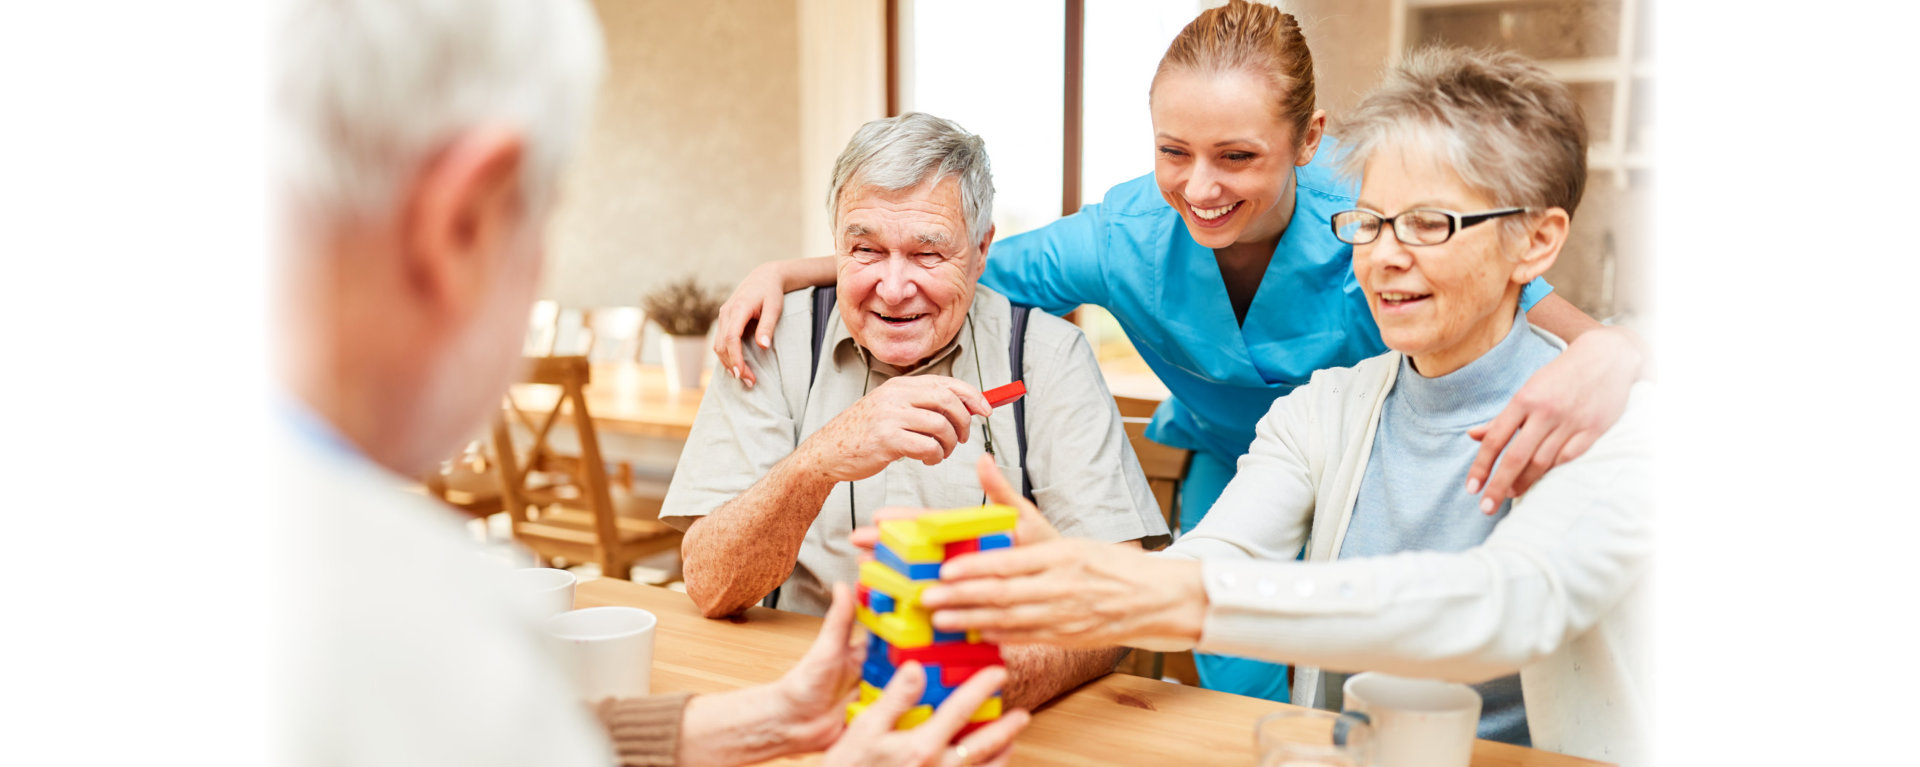 seniors playing blocks with their supportive caregiver